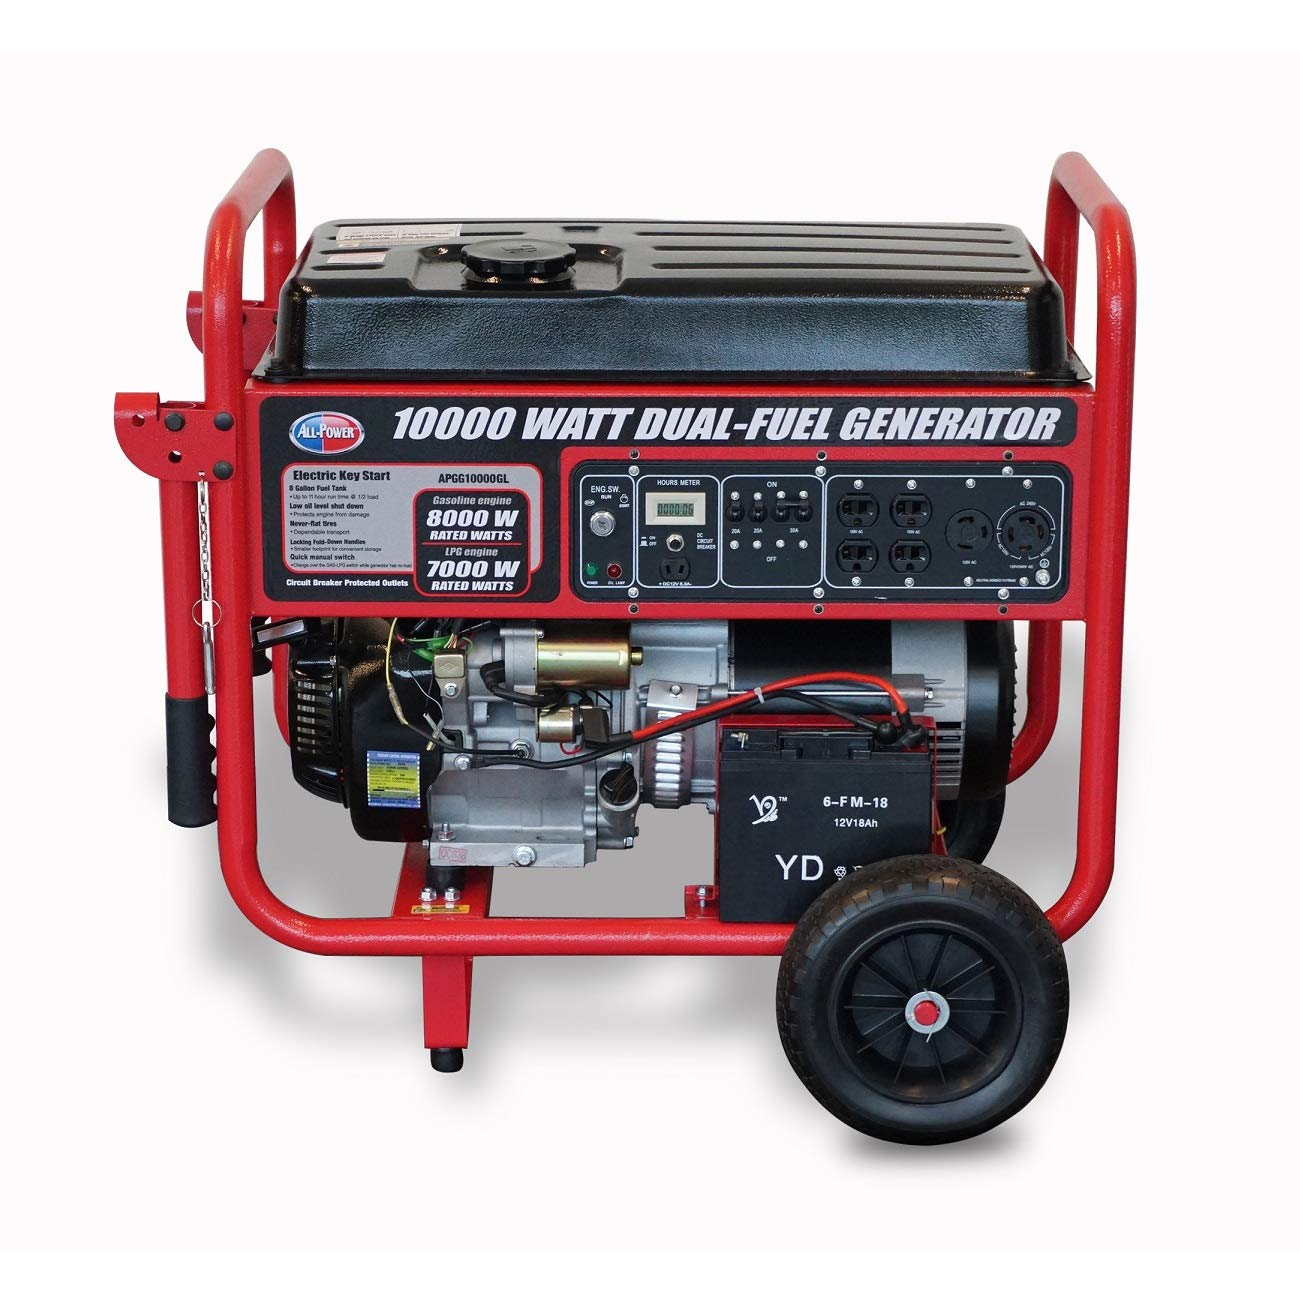 All Power America 10000 Watt Dual Fuel Generator W/ Electric Start, APGG10000GL 10000W Gas/Propane Portable